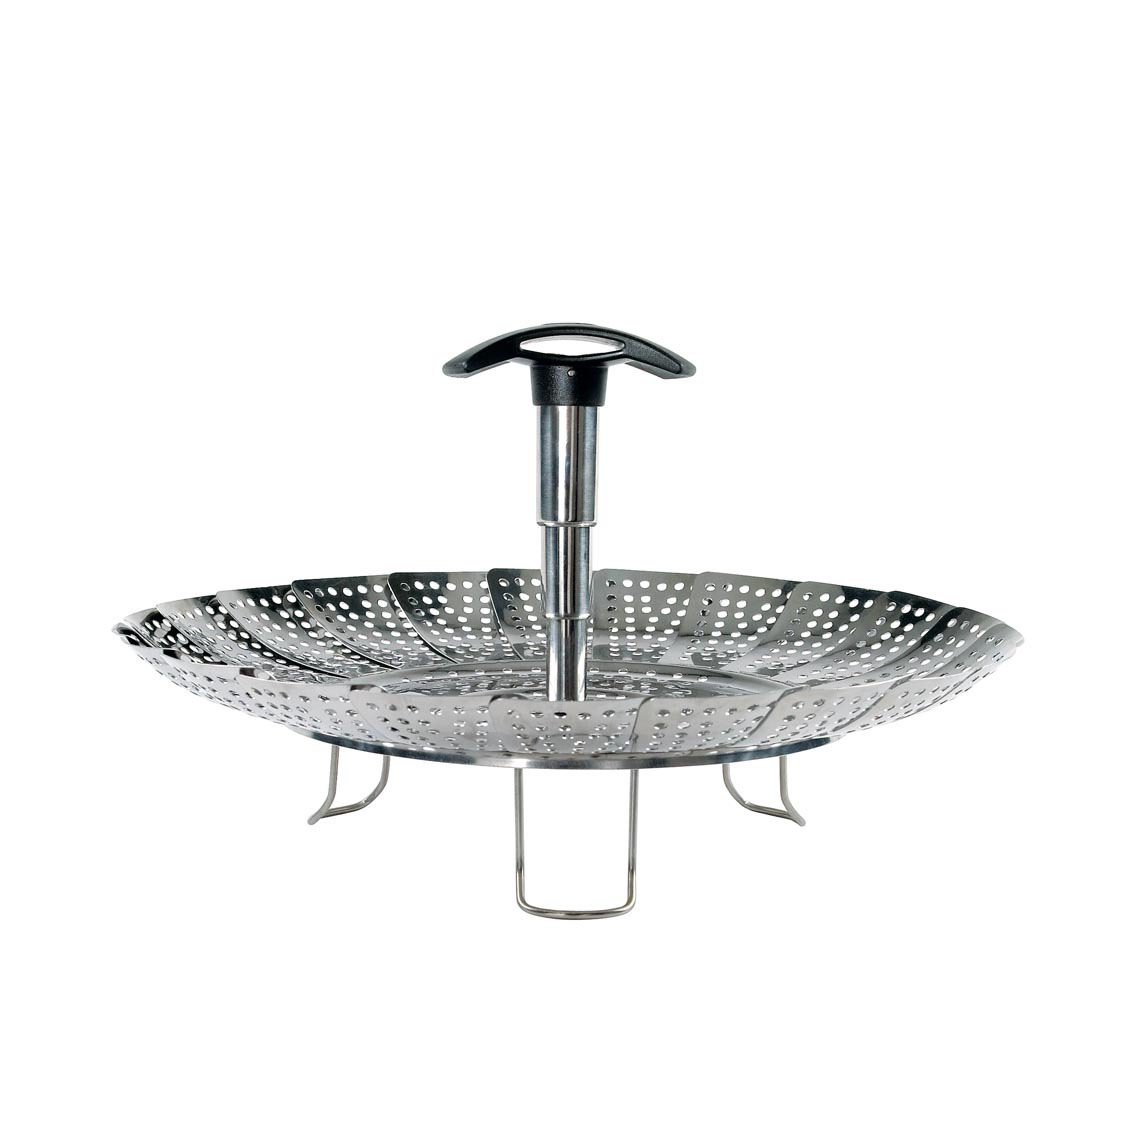 Stainless Steel Steamer with Extendable Handle